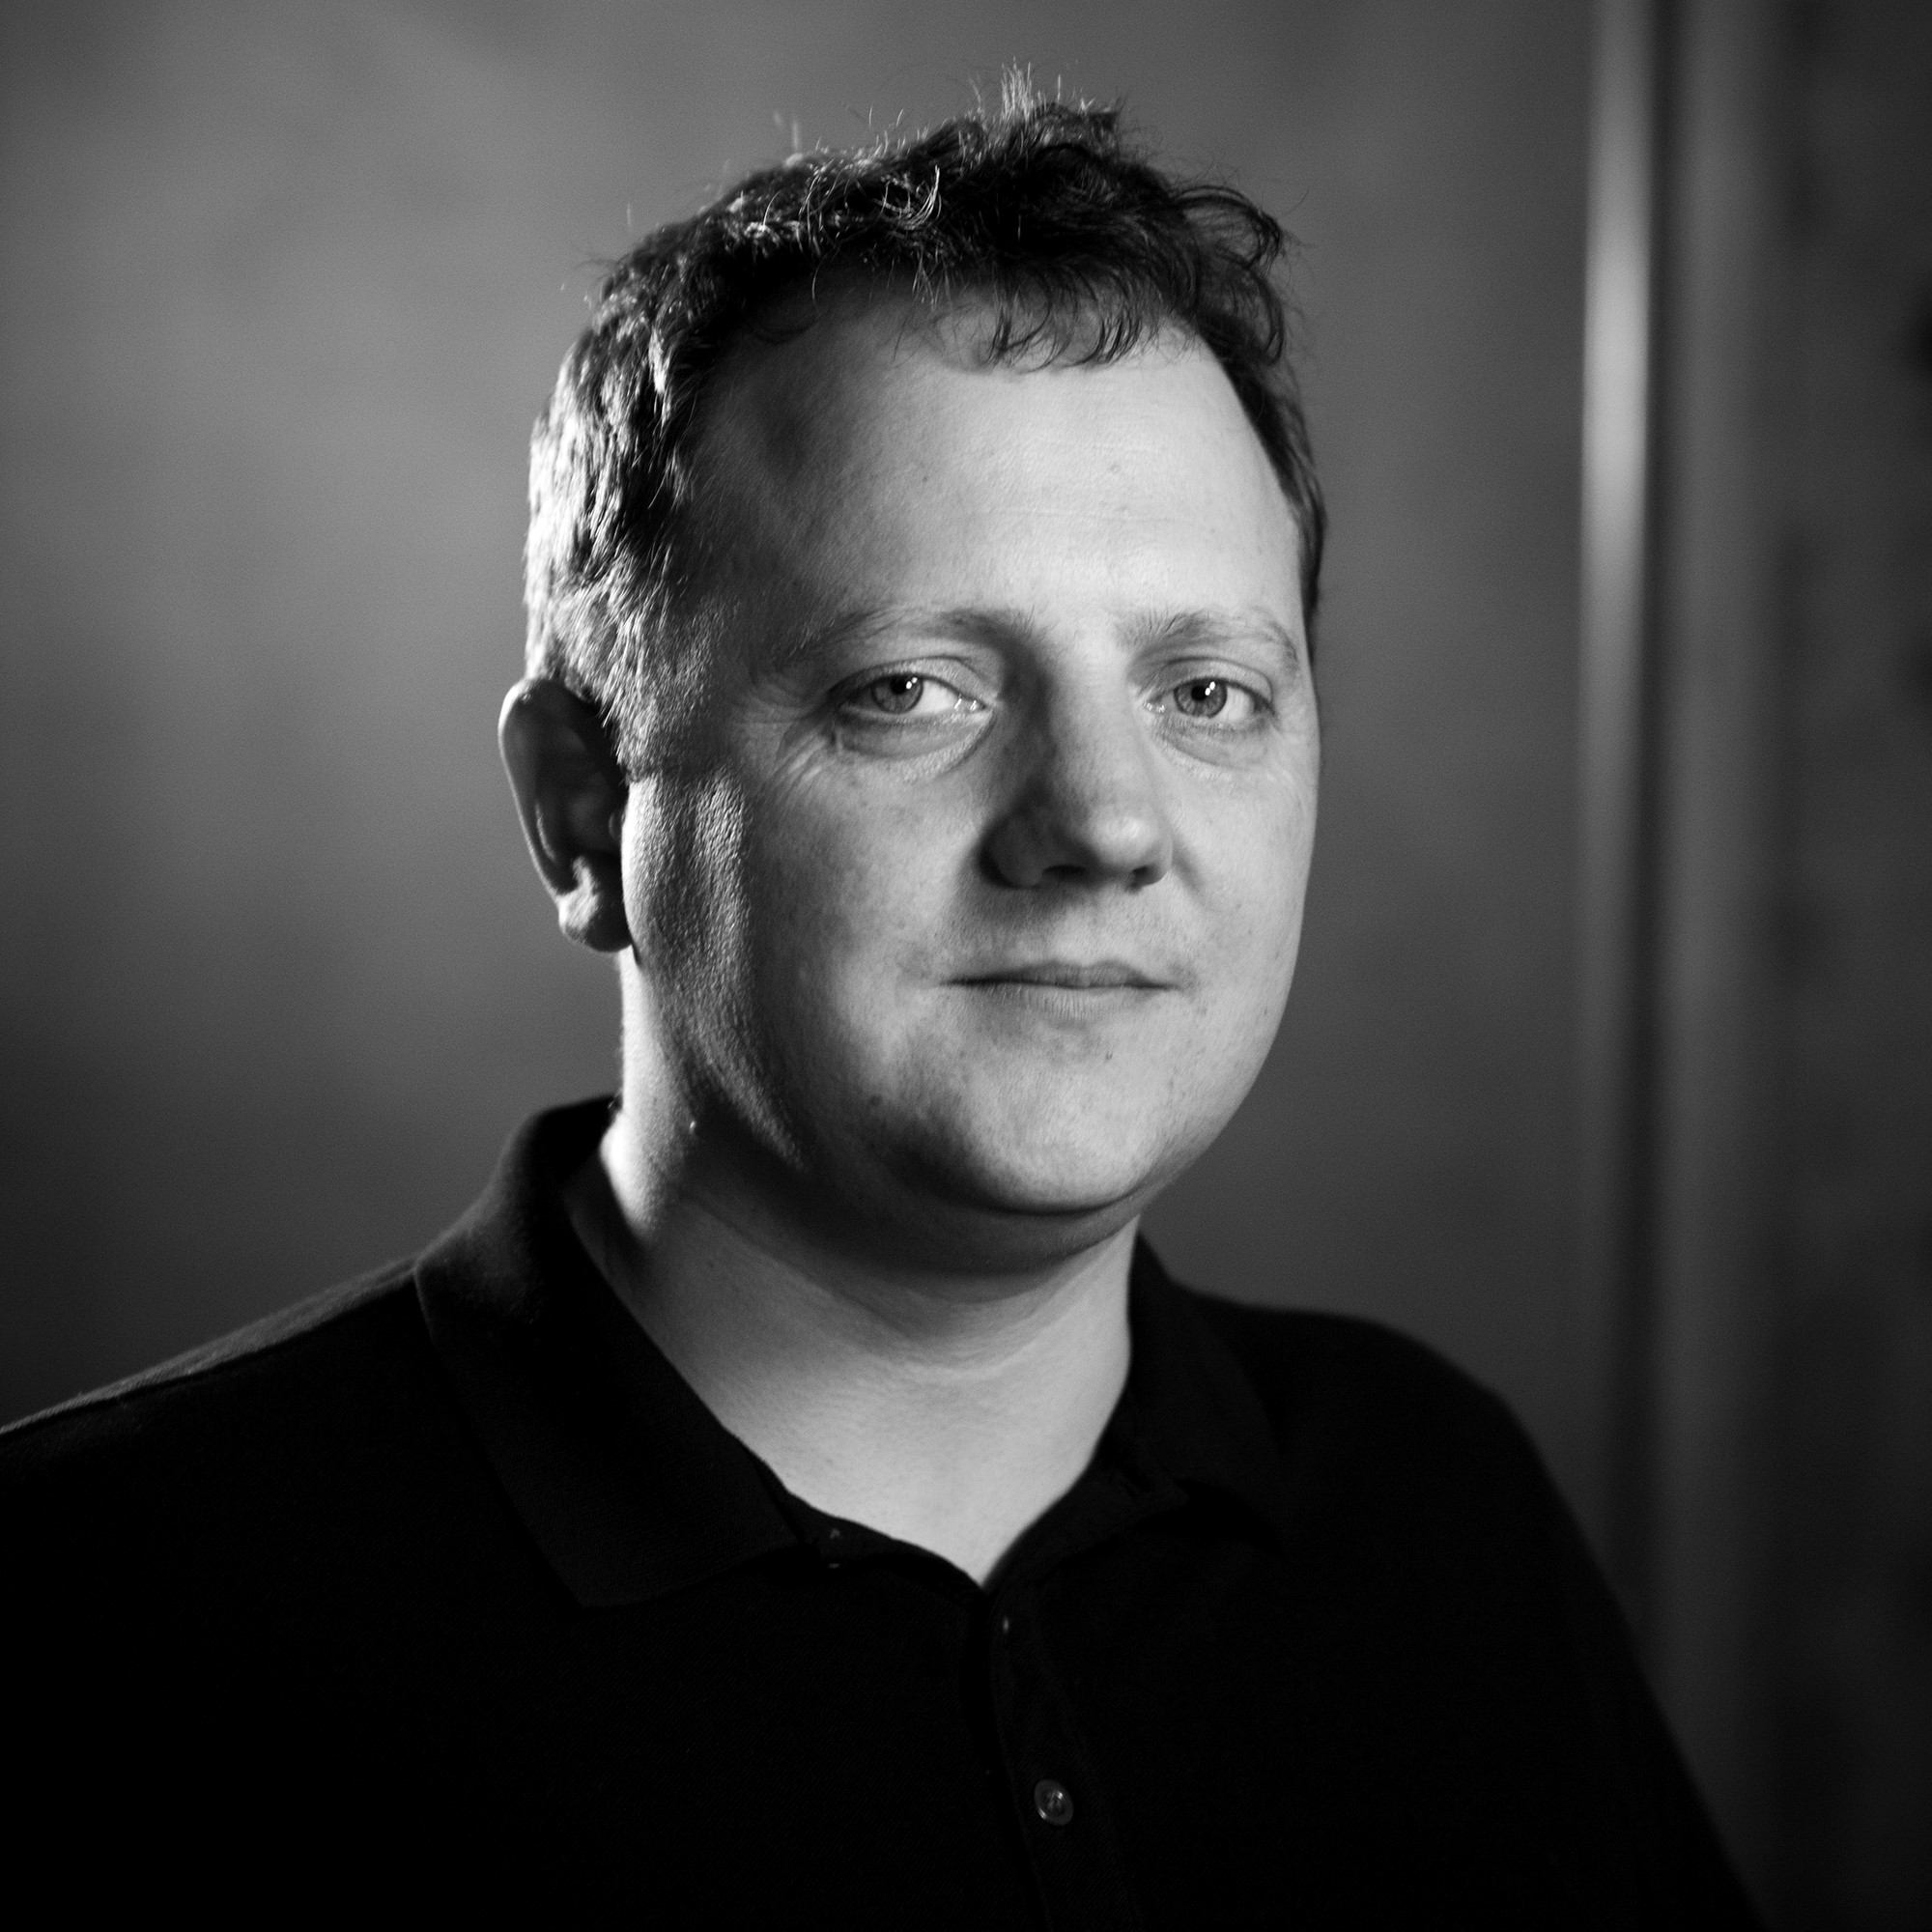 Thomas Wester: Creative and Technical Director. Designer with an interdisciplinary, experimental approach that uses technology as incubator for design innovation.